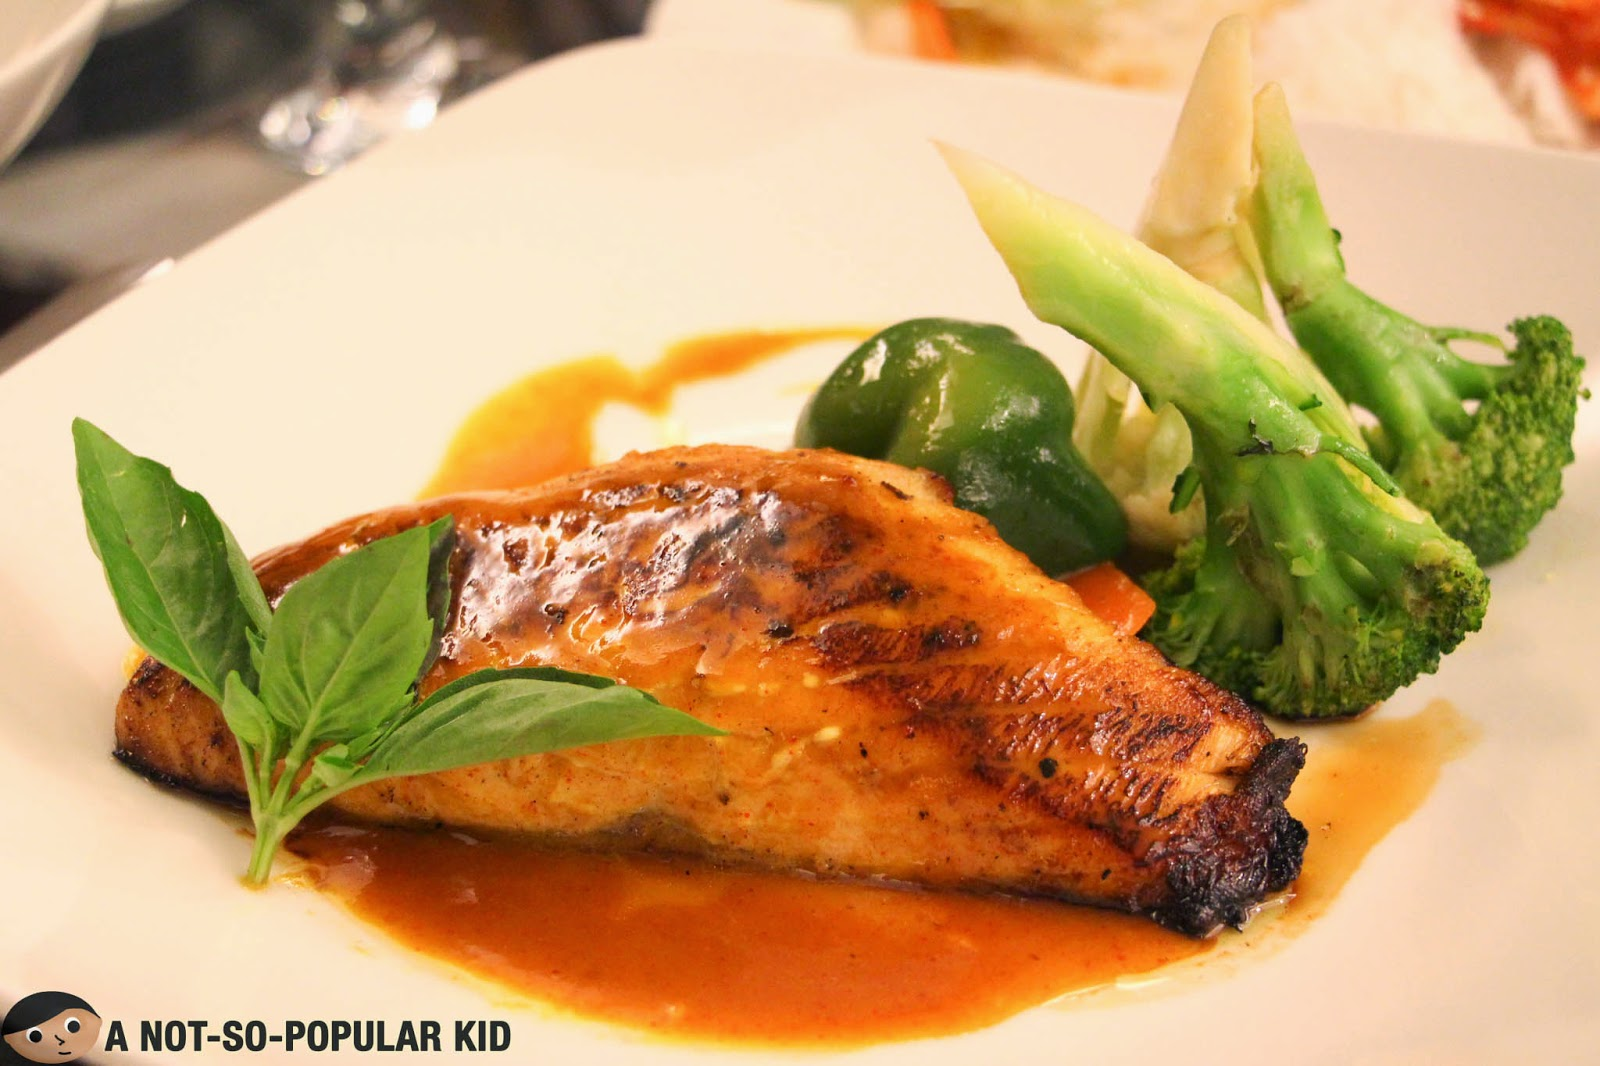 The surprisingly affordable Roasted Salmon of Cafe Astoria